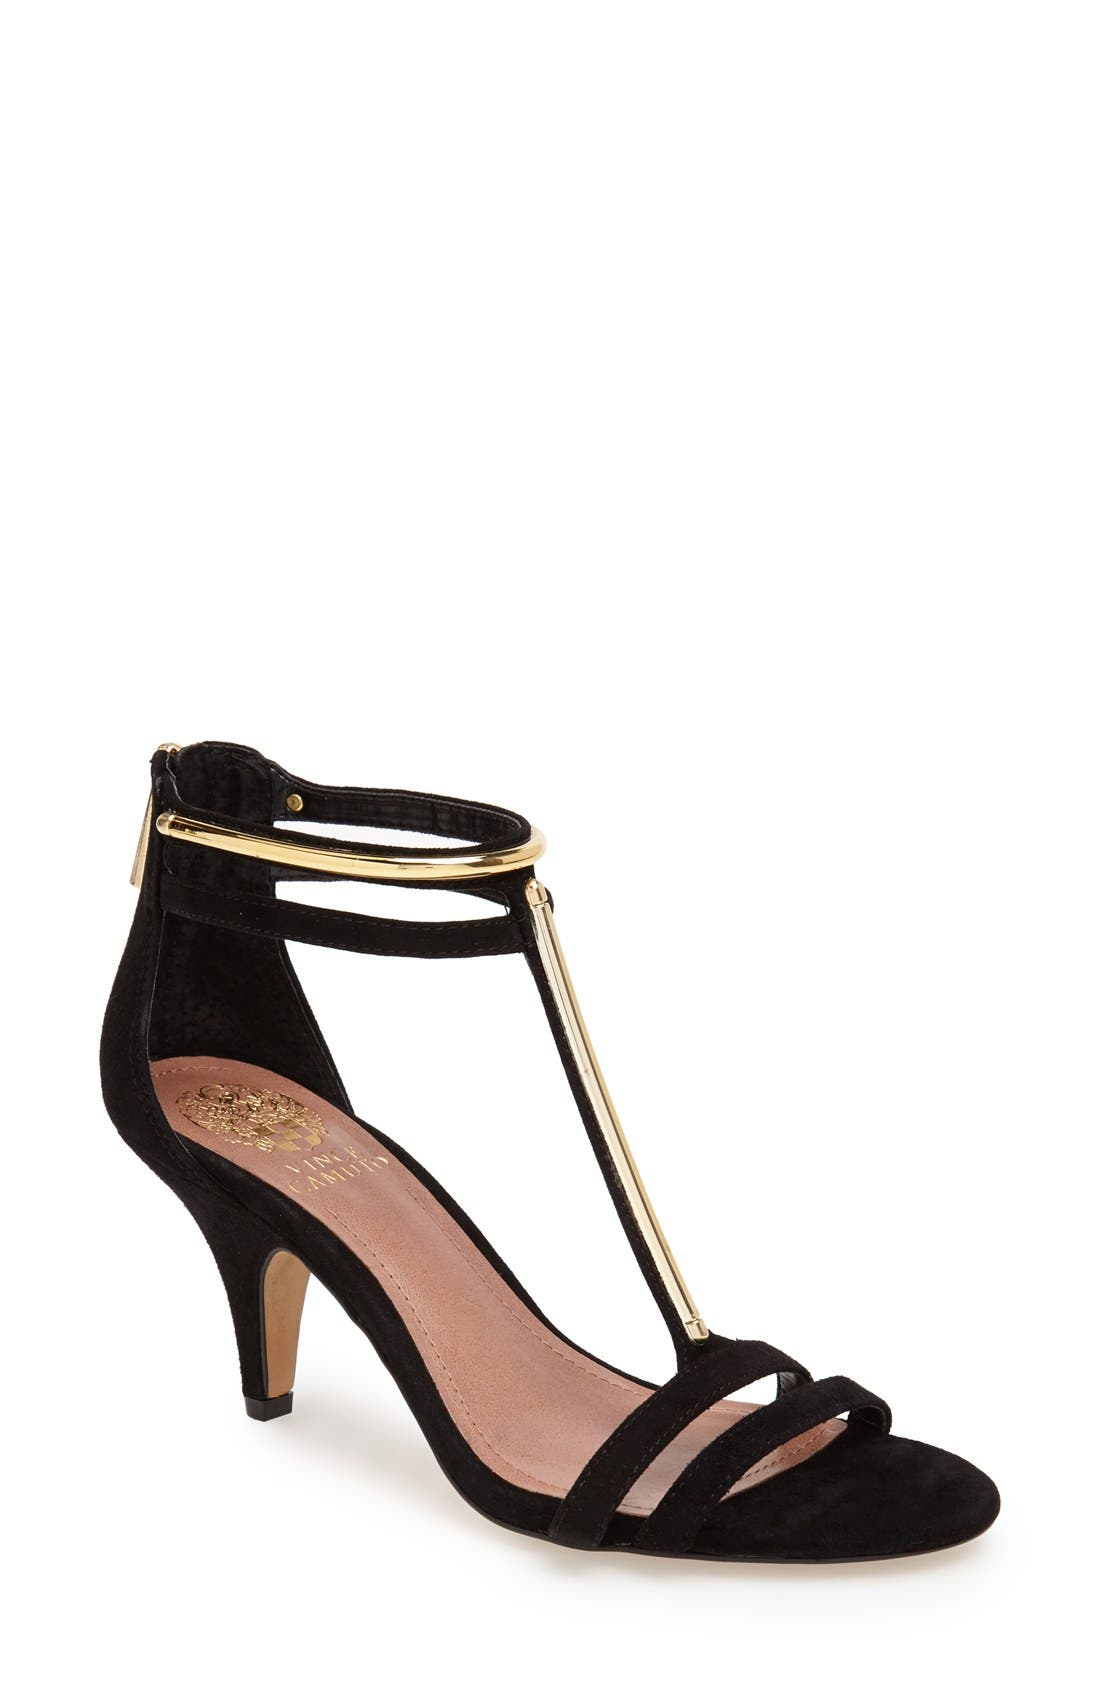 Main Image - Vince Camuto 'Mitzy' Suede T-Strap Sandal (Women)